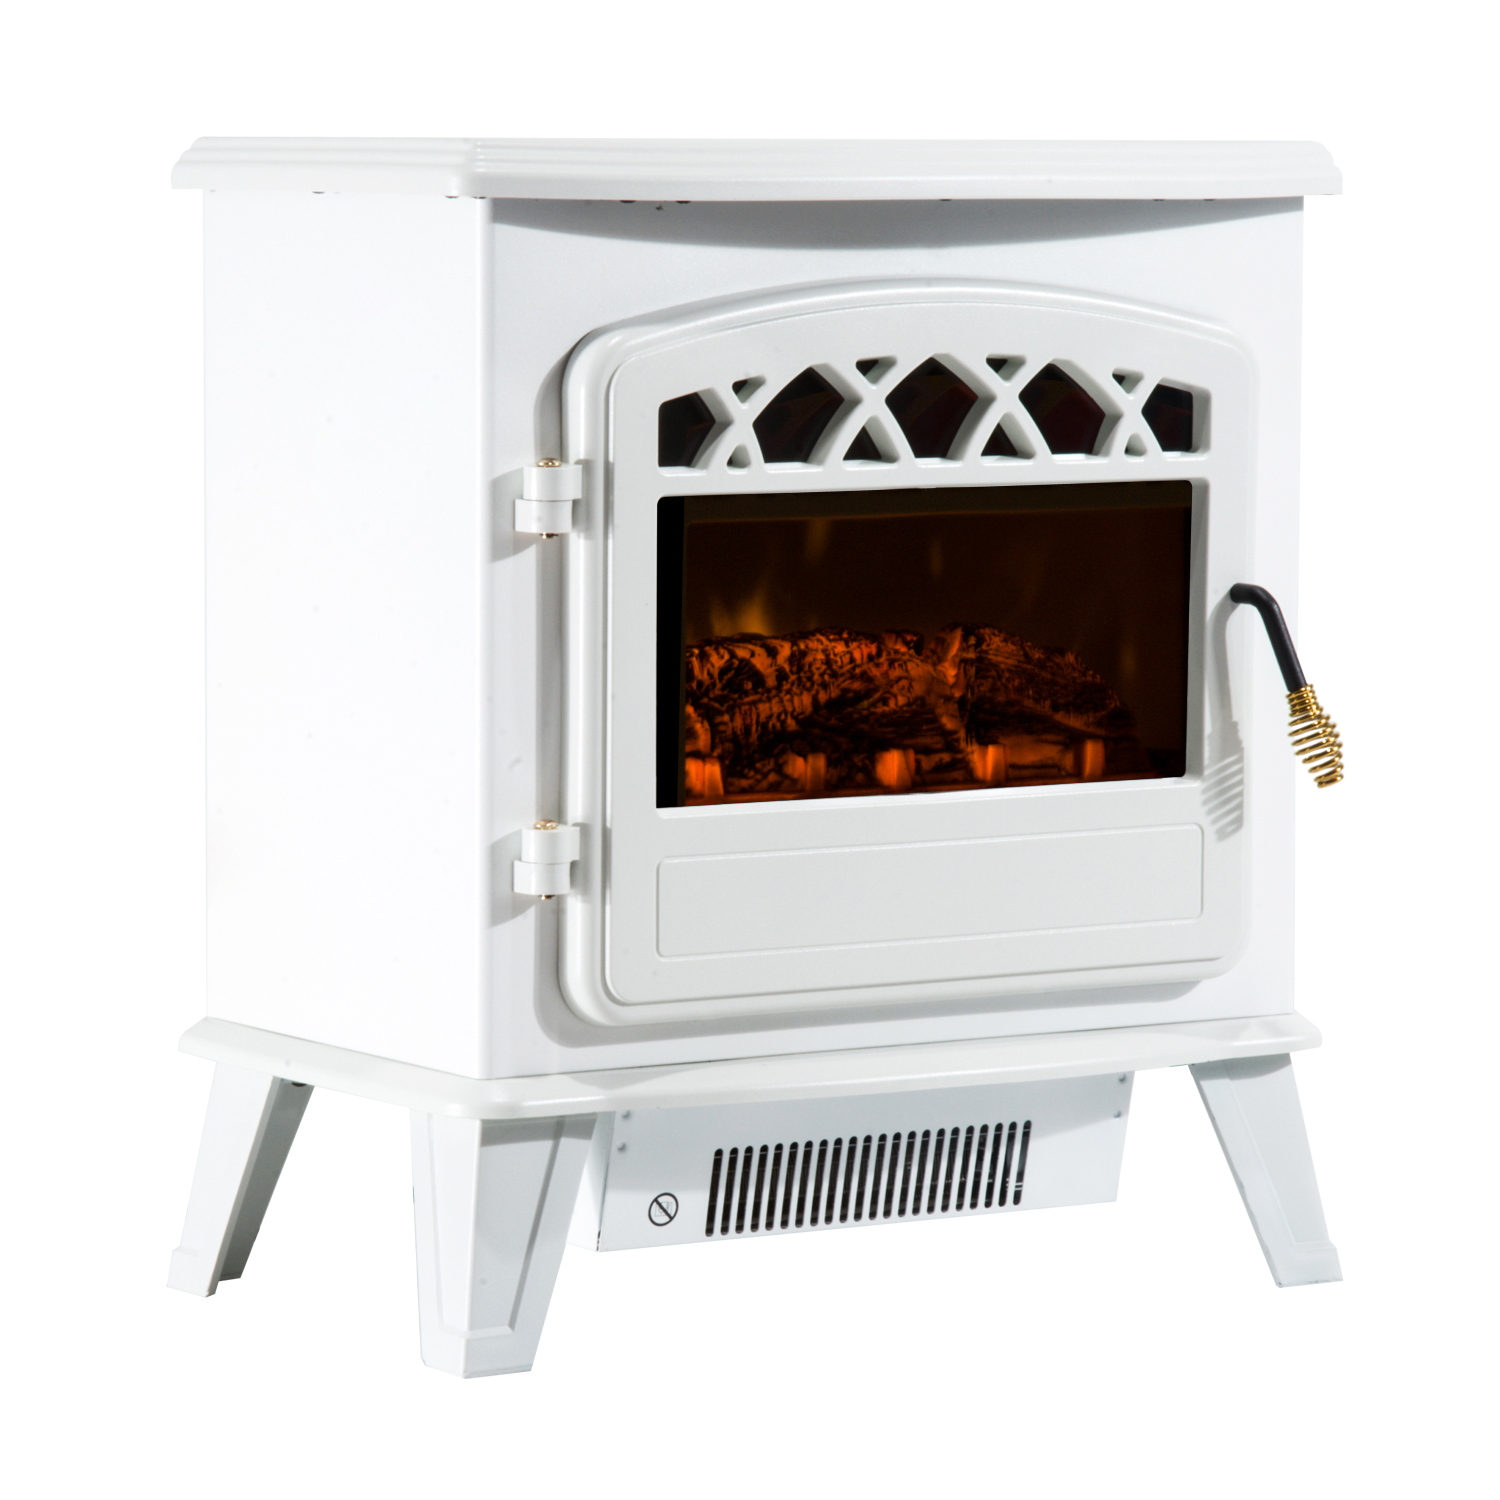 HOMCOM Electric Fireplace With Flame Effect Adjustable Power 900 W/1800 W 51 × 31 × 56 Cm White